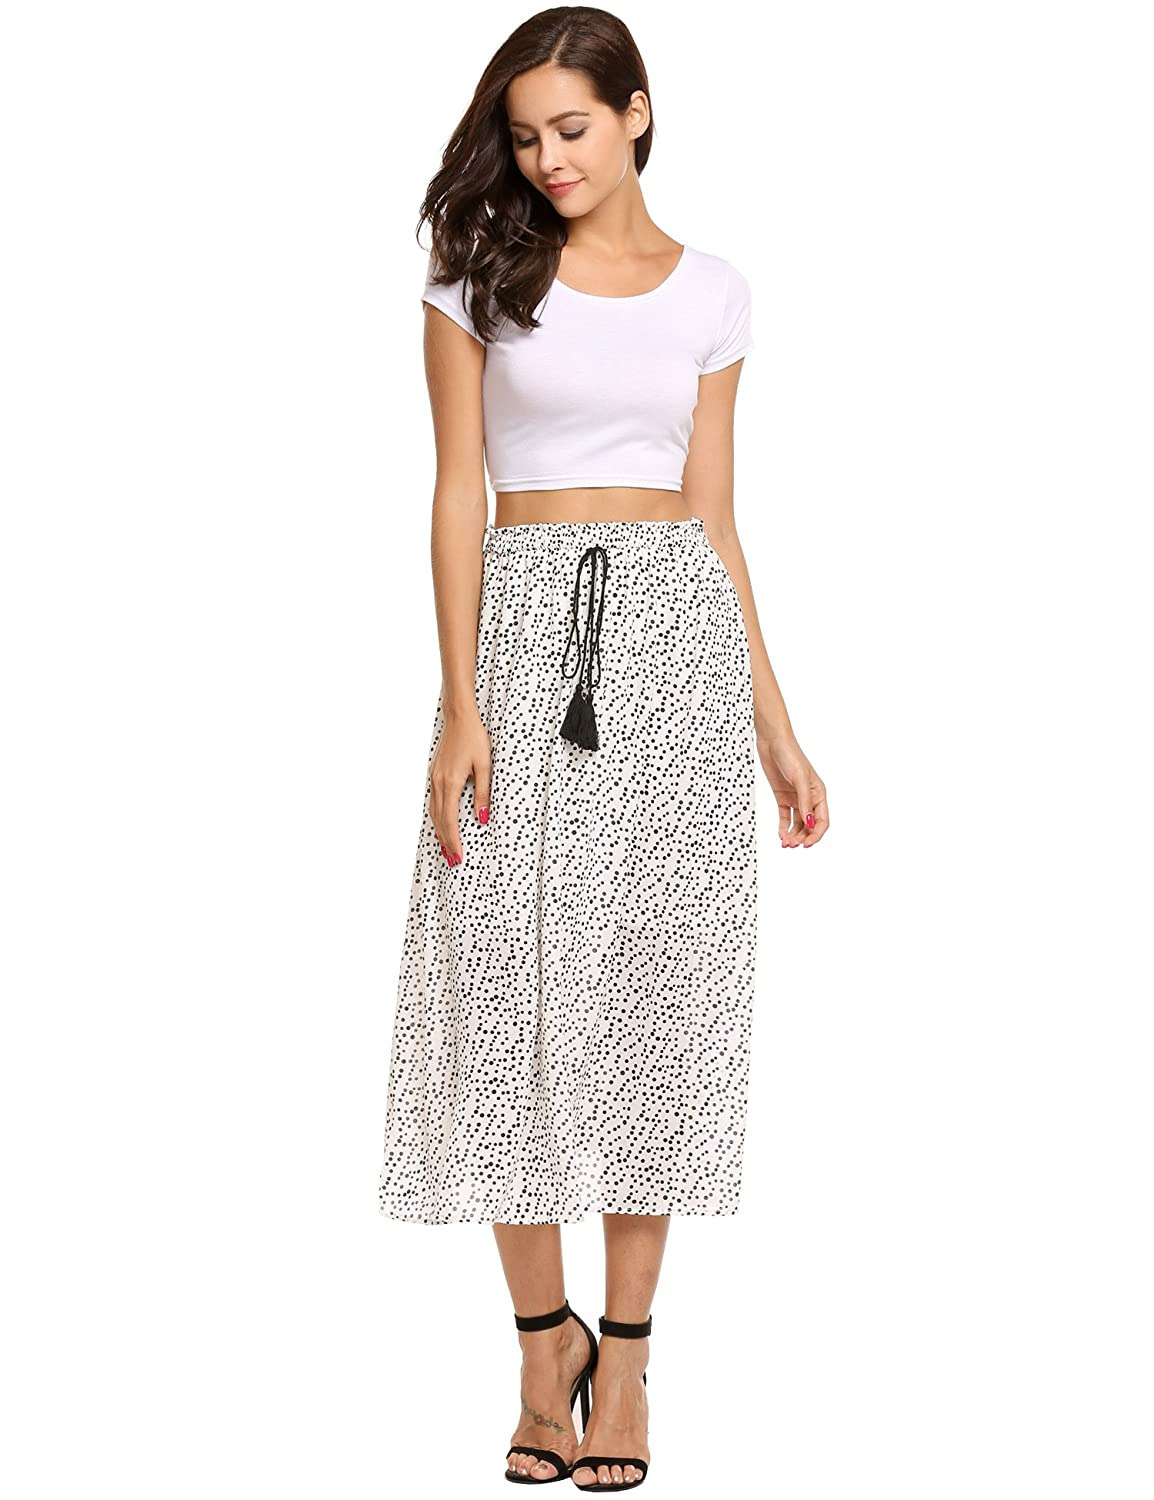 aec3fafa32ffe5 A-line flared silhouette,high elastic waistband, and textured skirt.  Features: Stretchy fabric for comfortable fit, skater skirt with an elastic  inner band